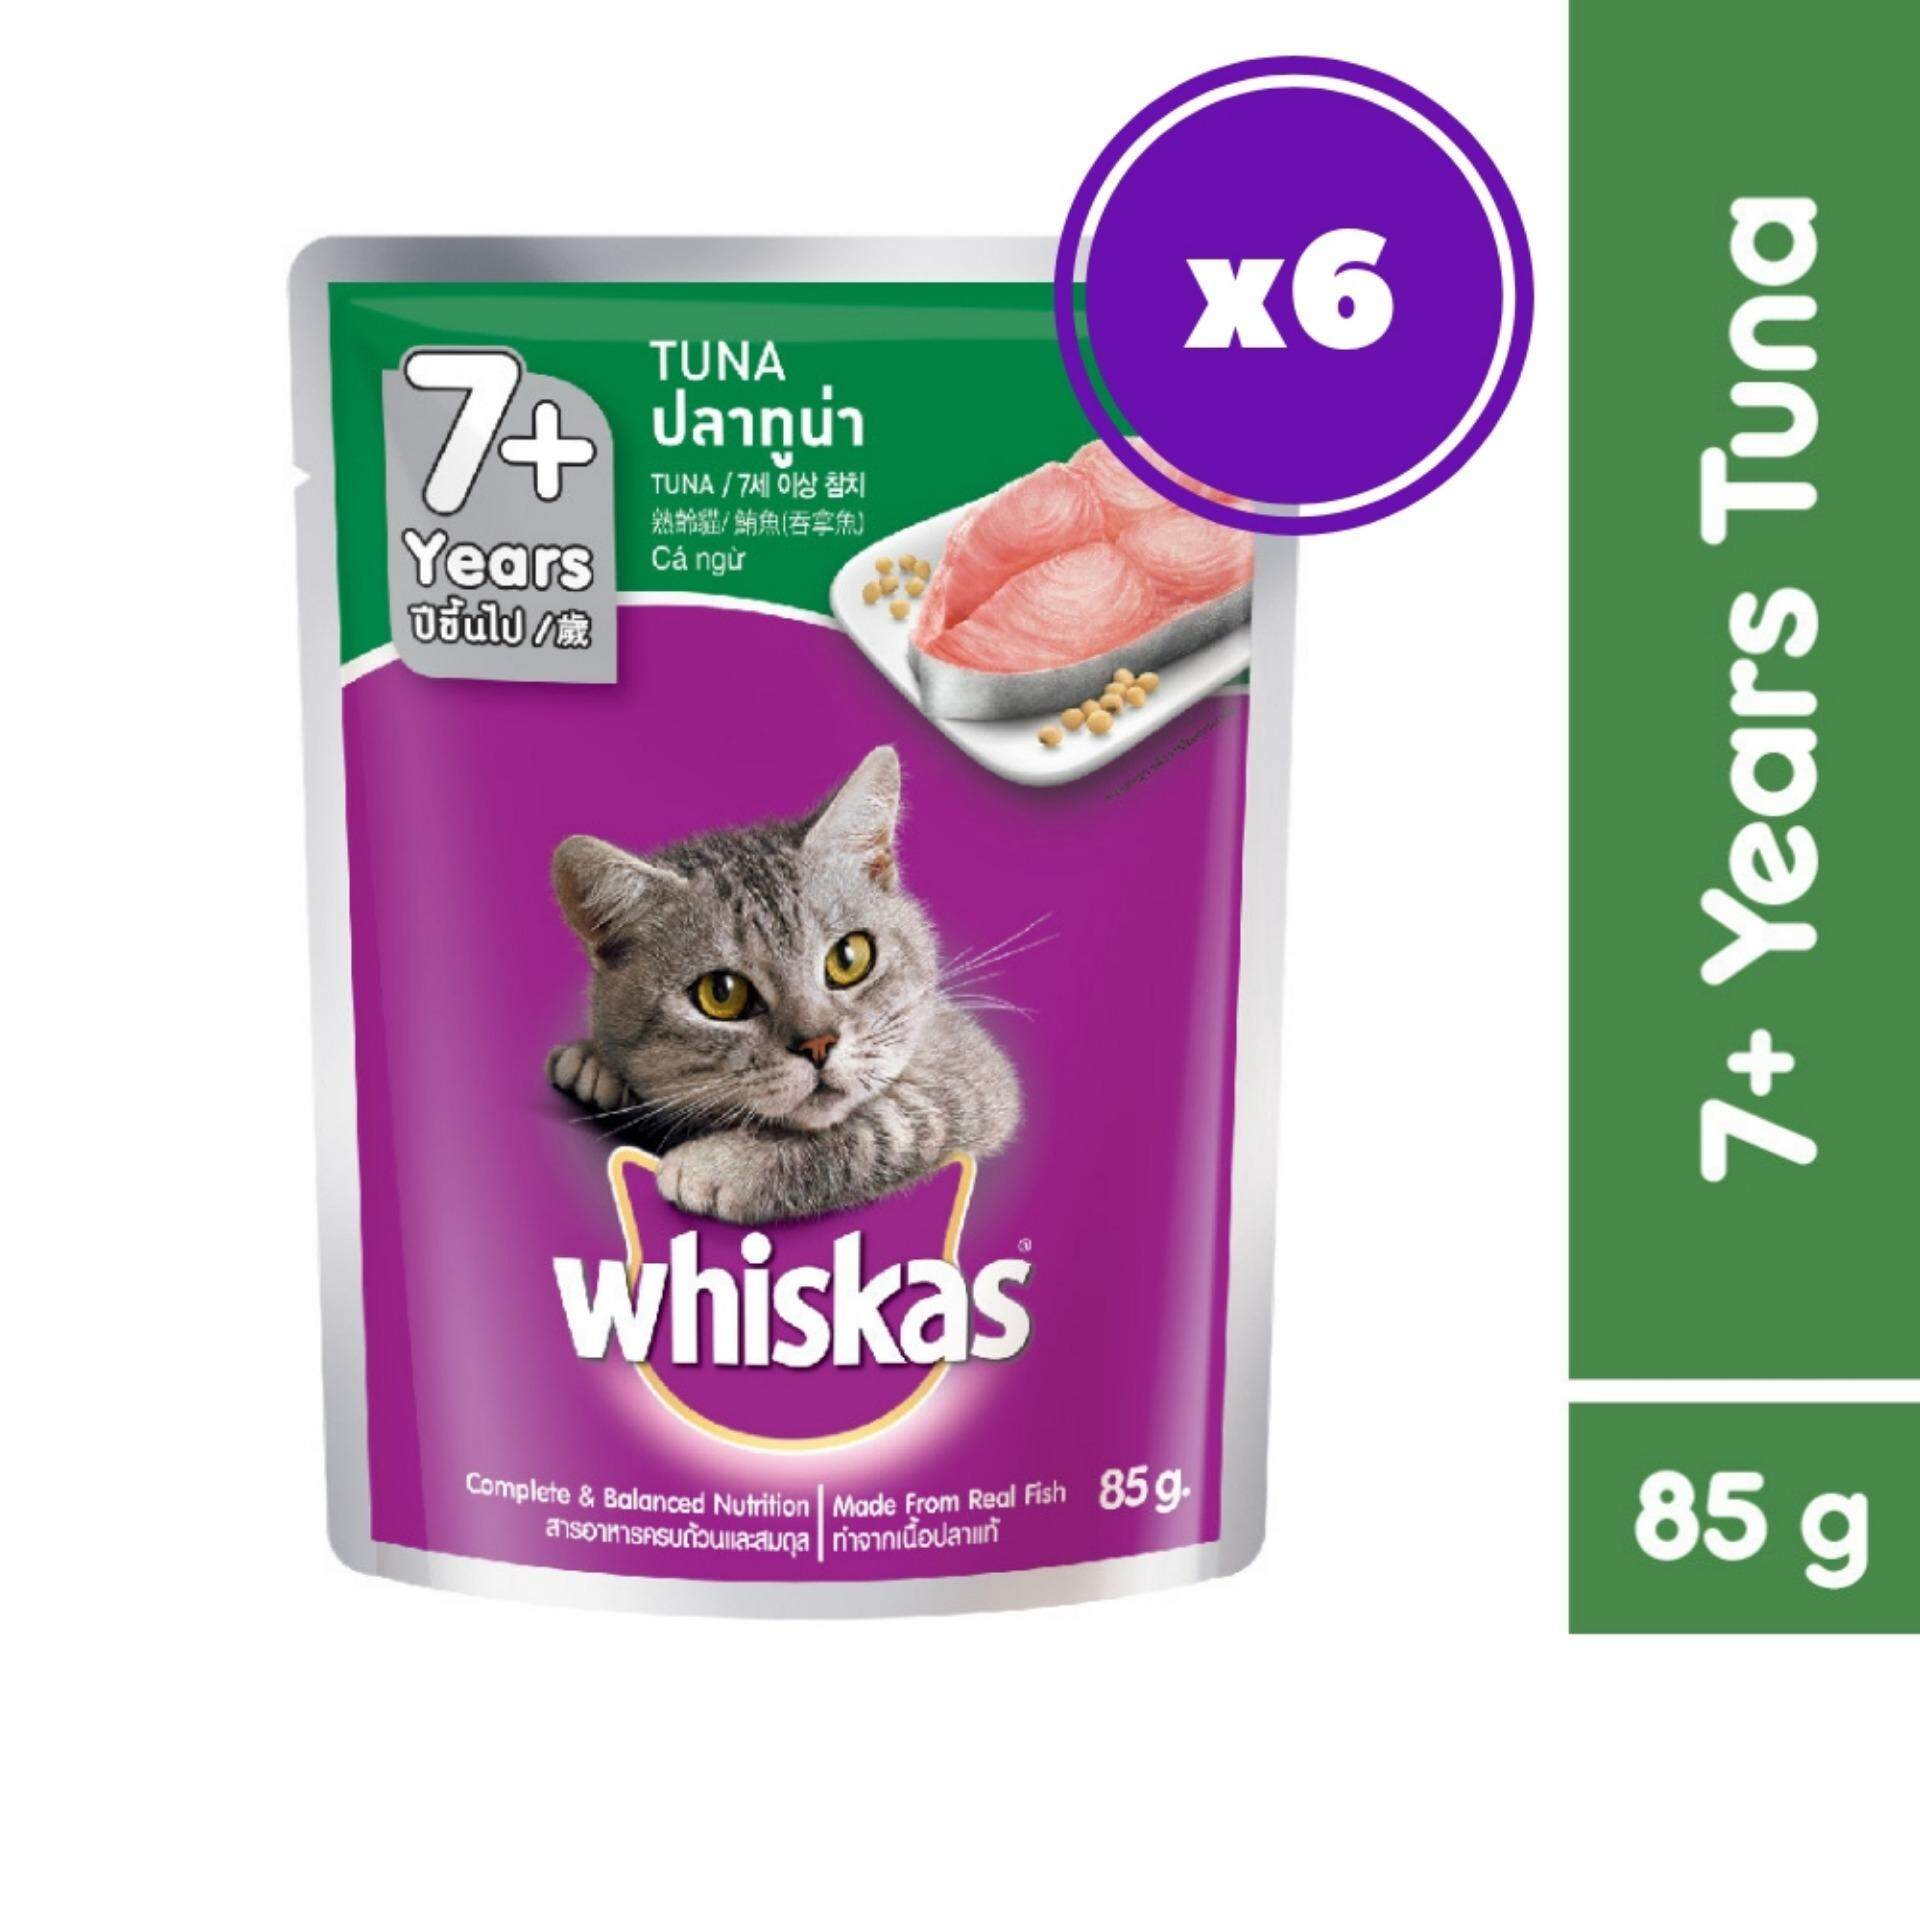 Whiskas Pouch 7+ Tuna 85 Gm Wet Food Cat Food X6 By Whiskas Official Store.